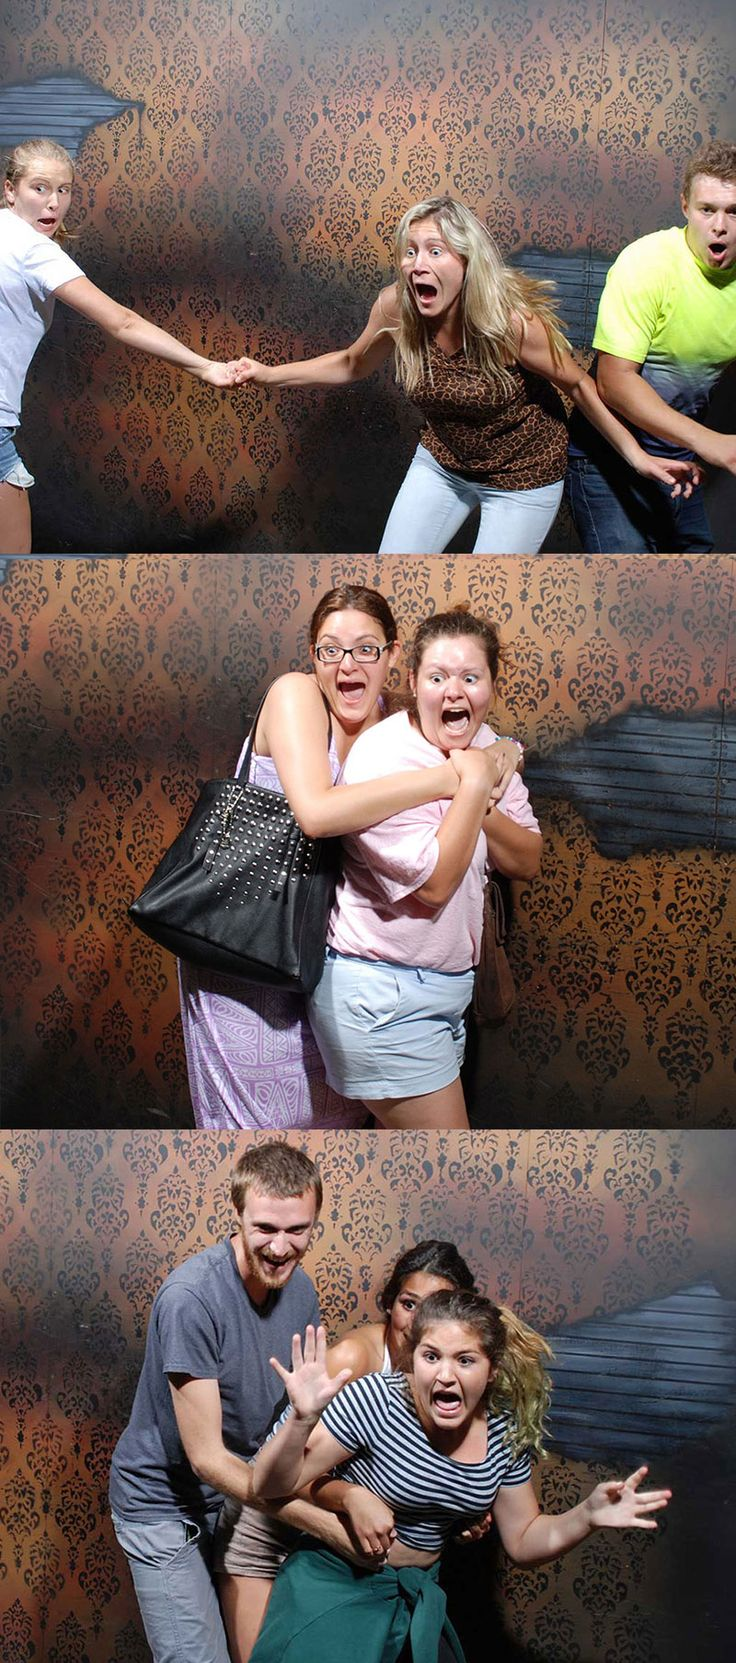 50 hilariously ridiculous haunted house reactions - Check Out The Top Fear Pics For This Week Of October Http